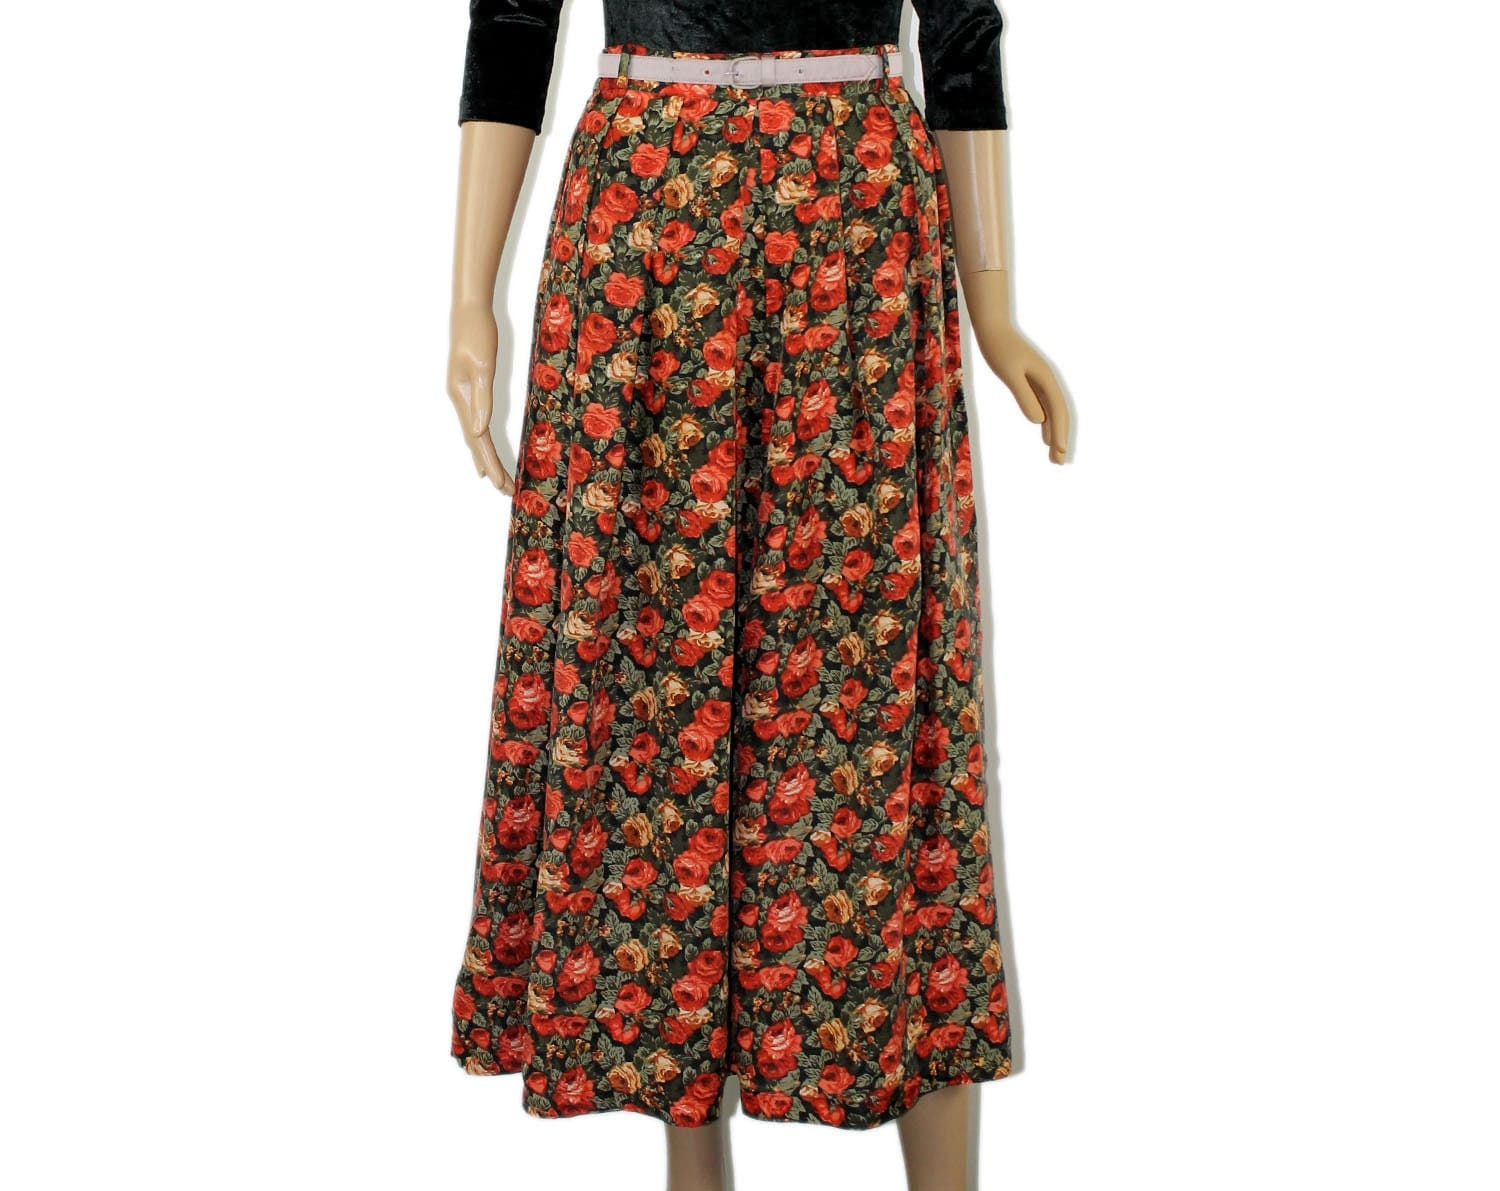 silk skirt high waist pleated pattern floral by